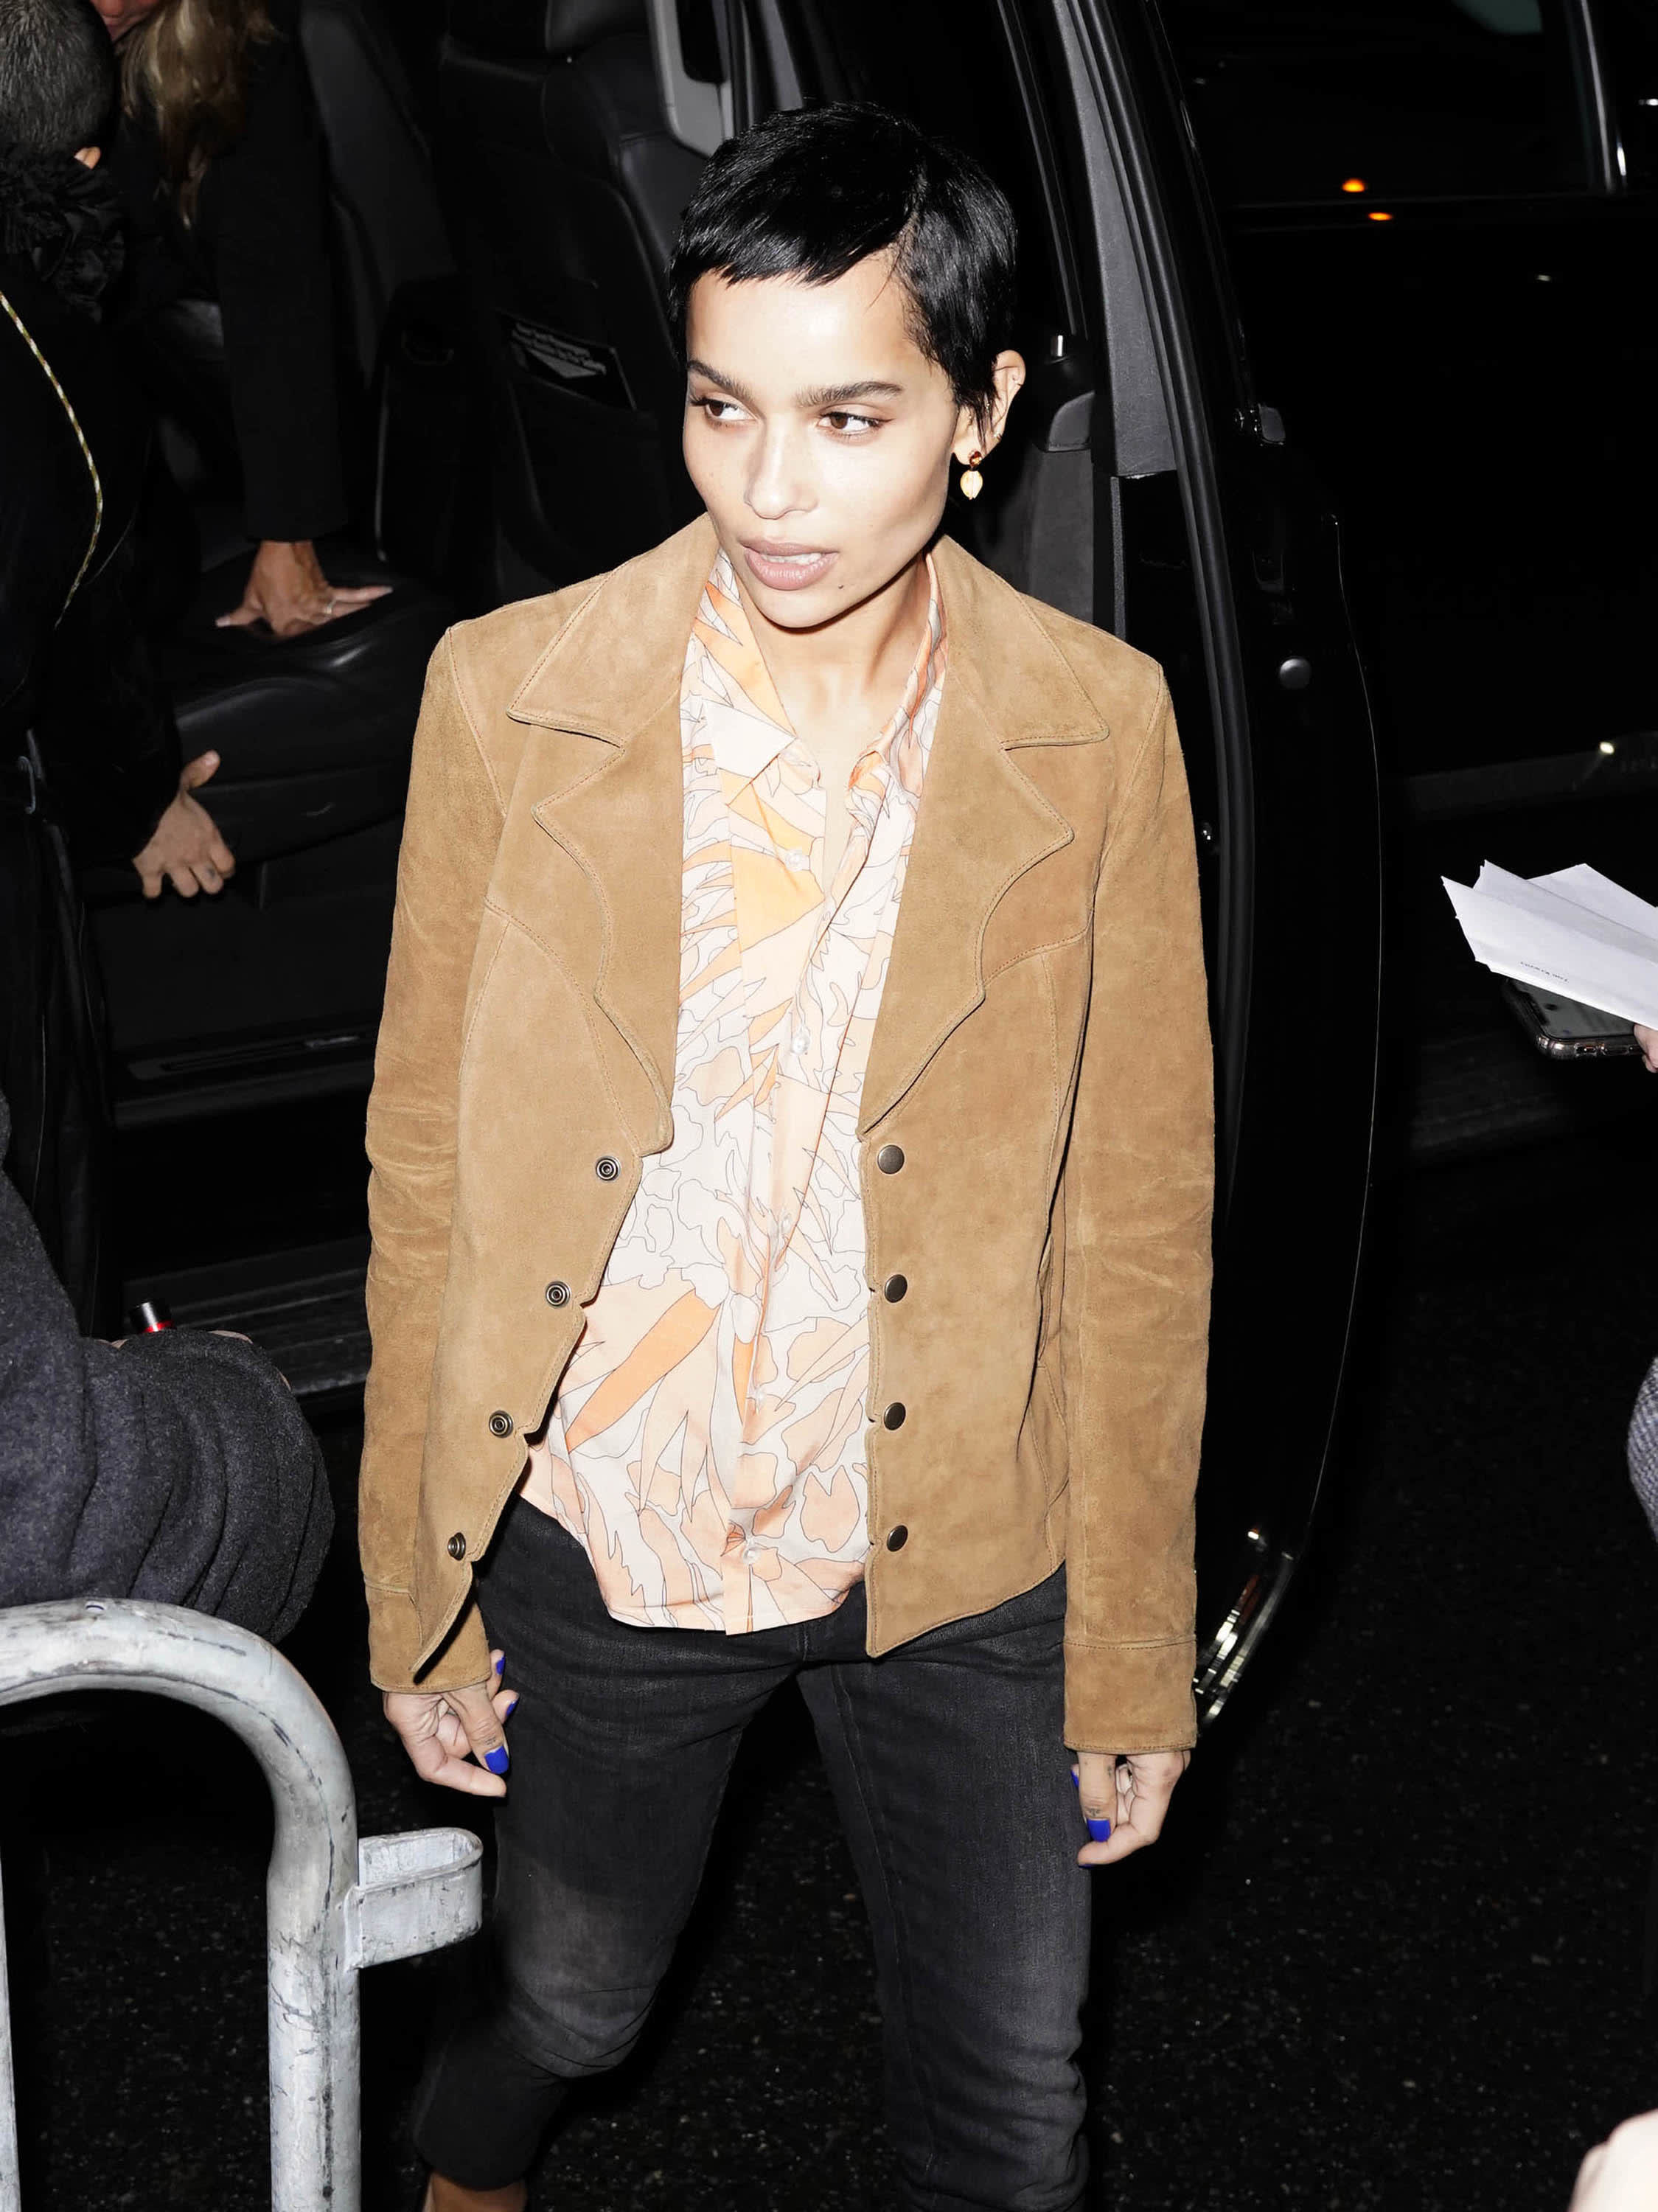 Zoe in jeans large patterned shirt and western style suede jacket